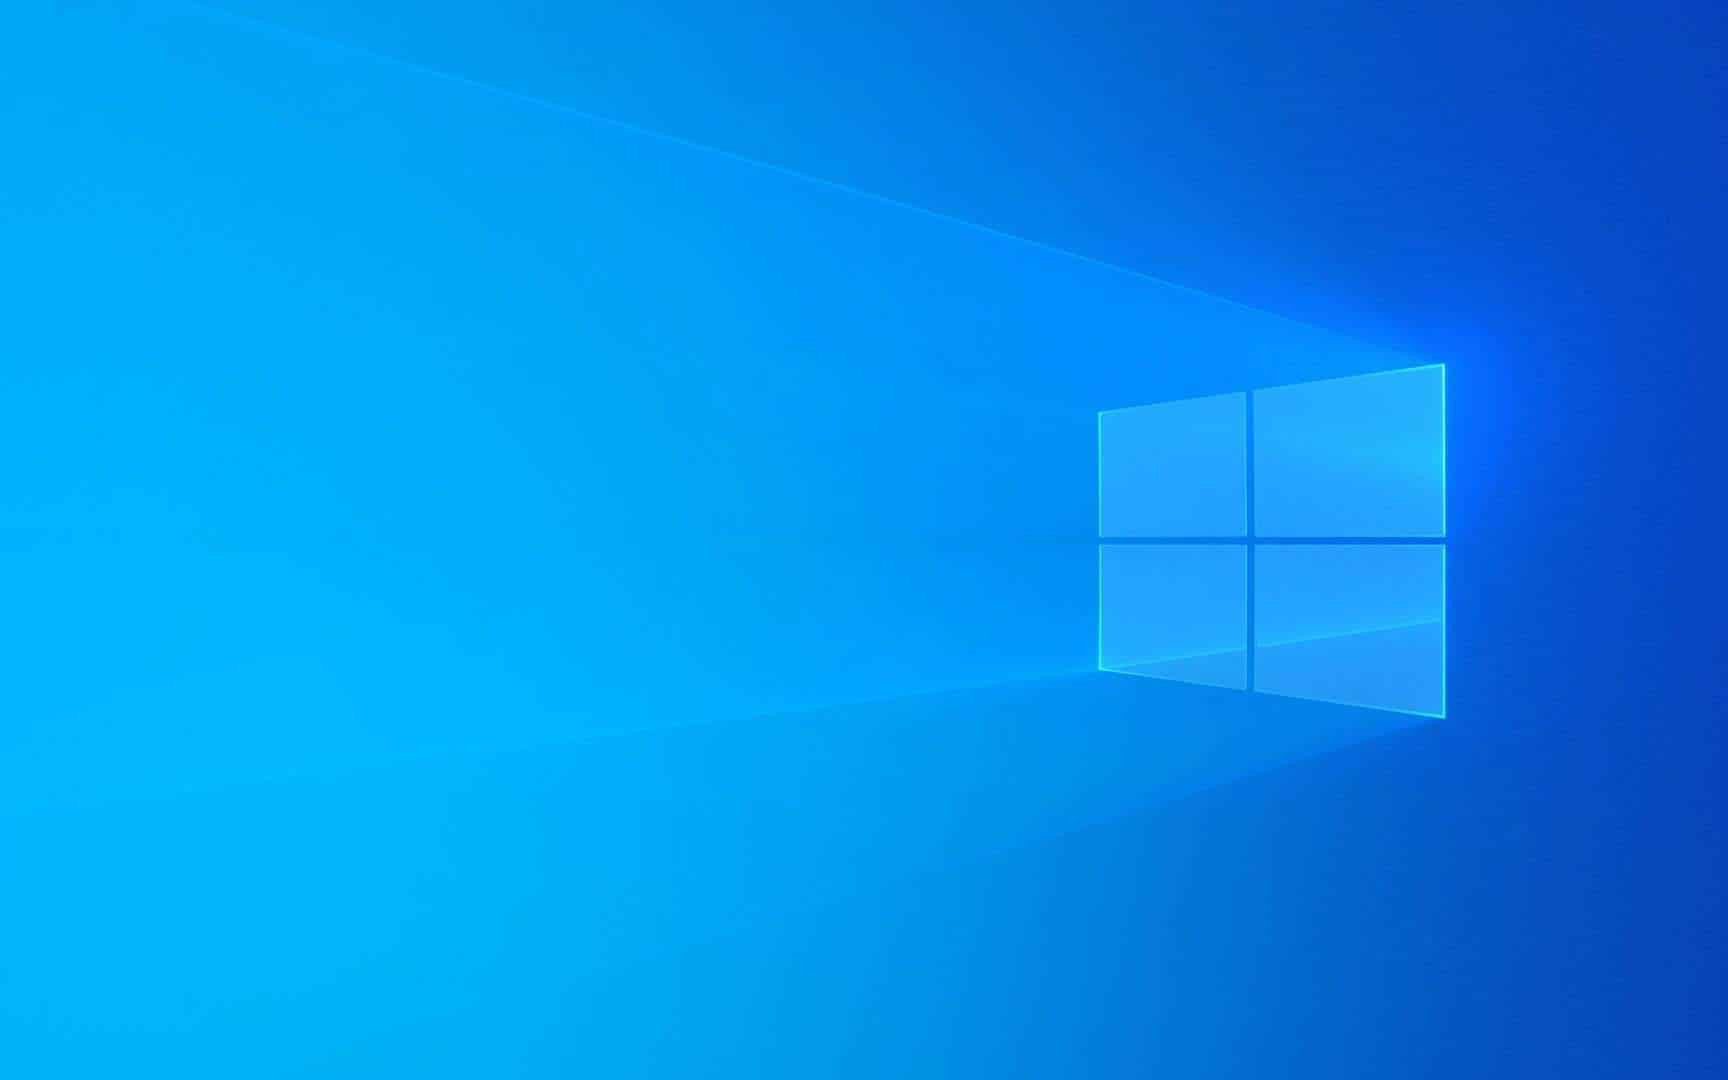 Windows 10 : ATTENTION, un ransomware piège les utilisateurs 4